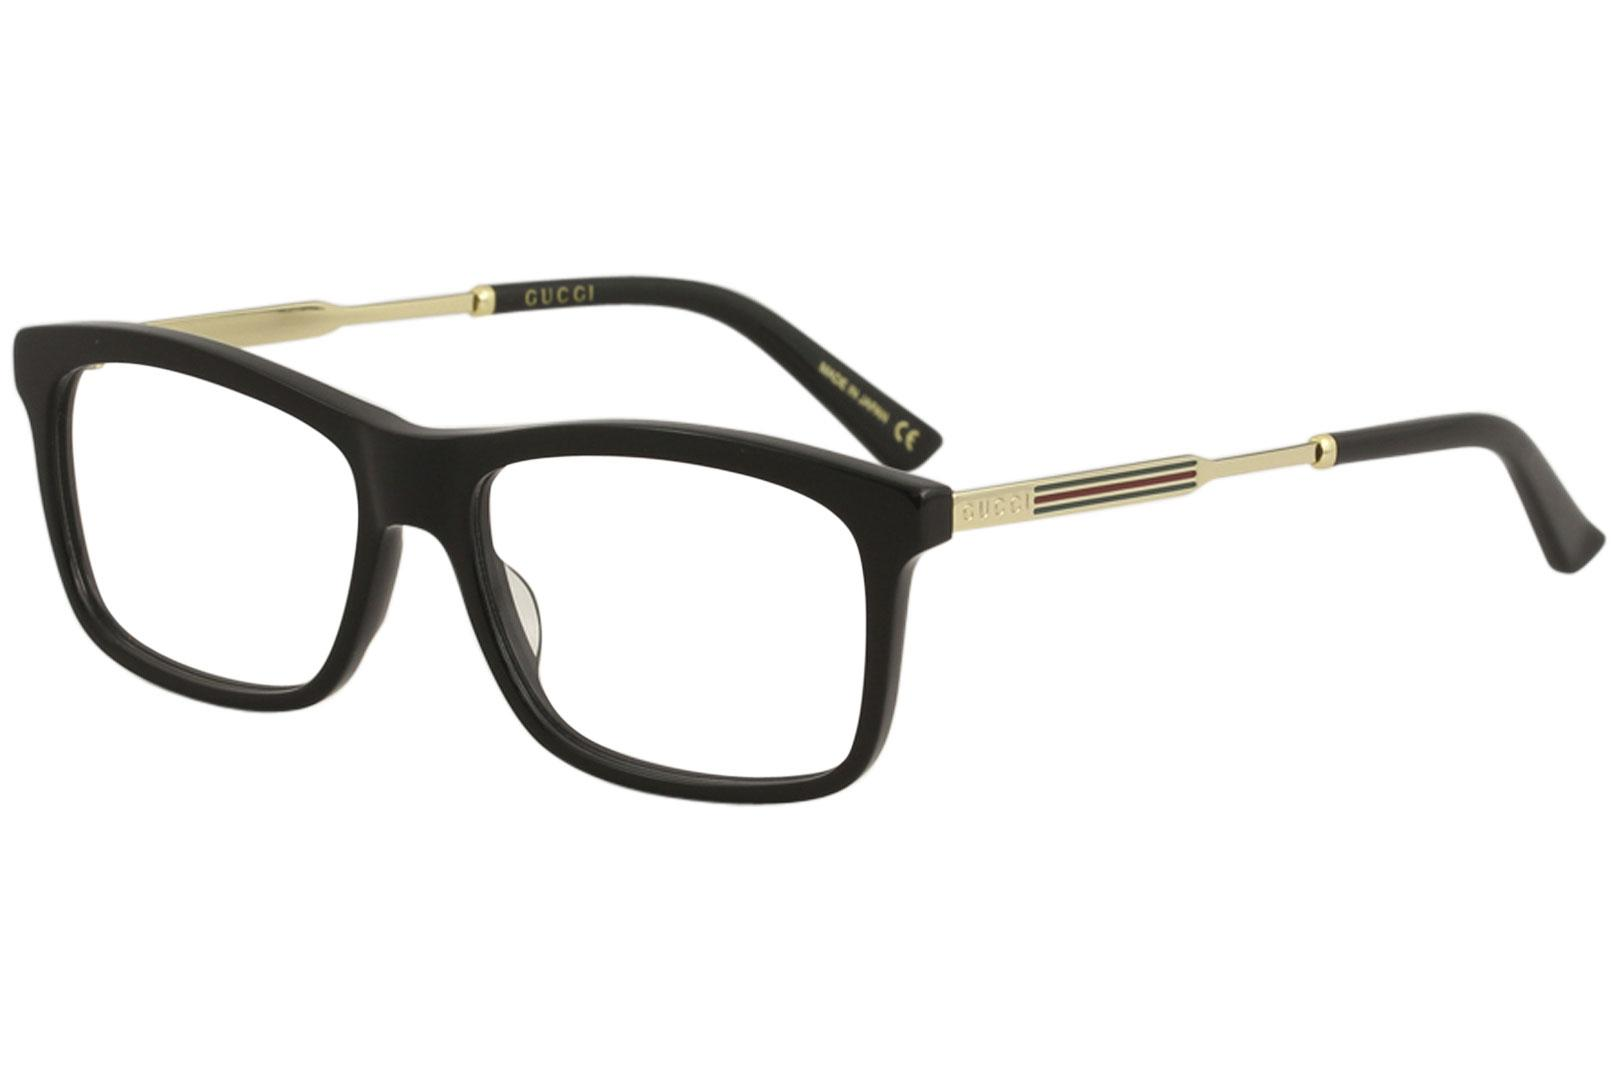 5ce0655c1ff4 Gucci Men's Eyeglasses GG0302O GG/0302/O Full Rim Optical Frame